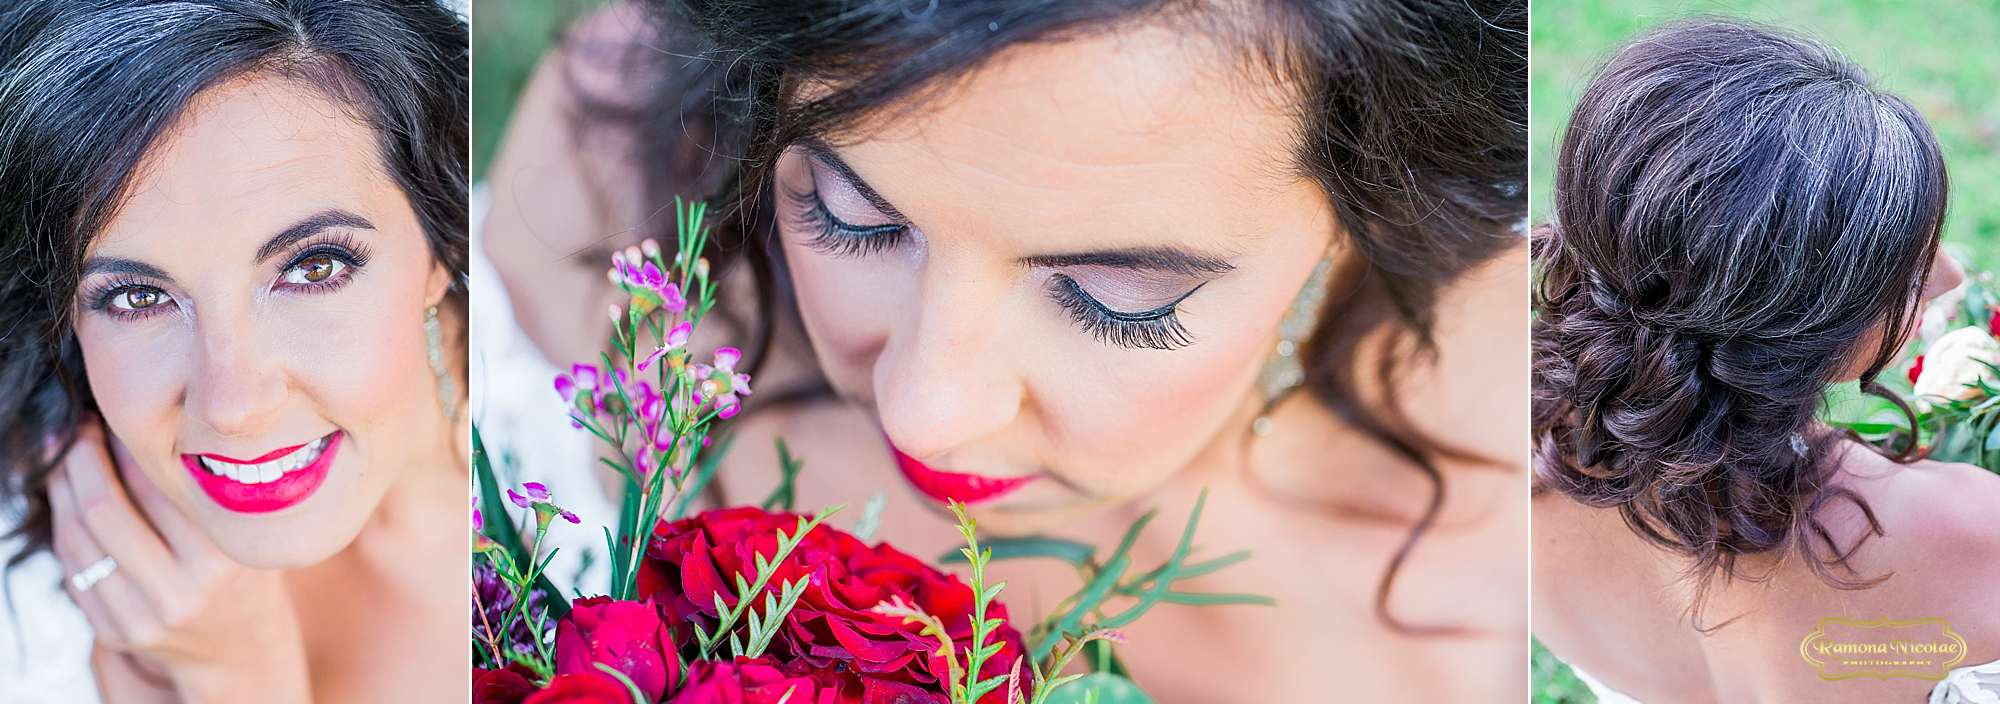 close up details of bridal hair and make up Anna Marie at Brookgreen gardens-1.jpg.jpg